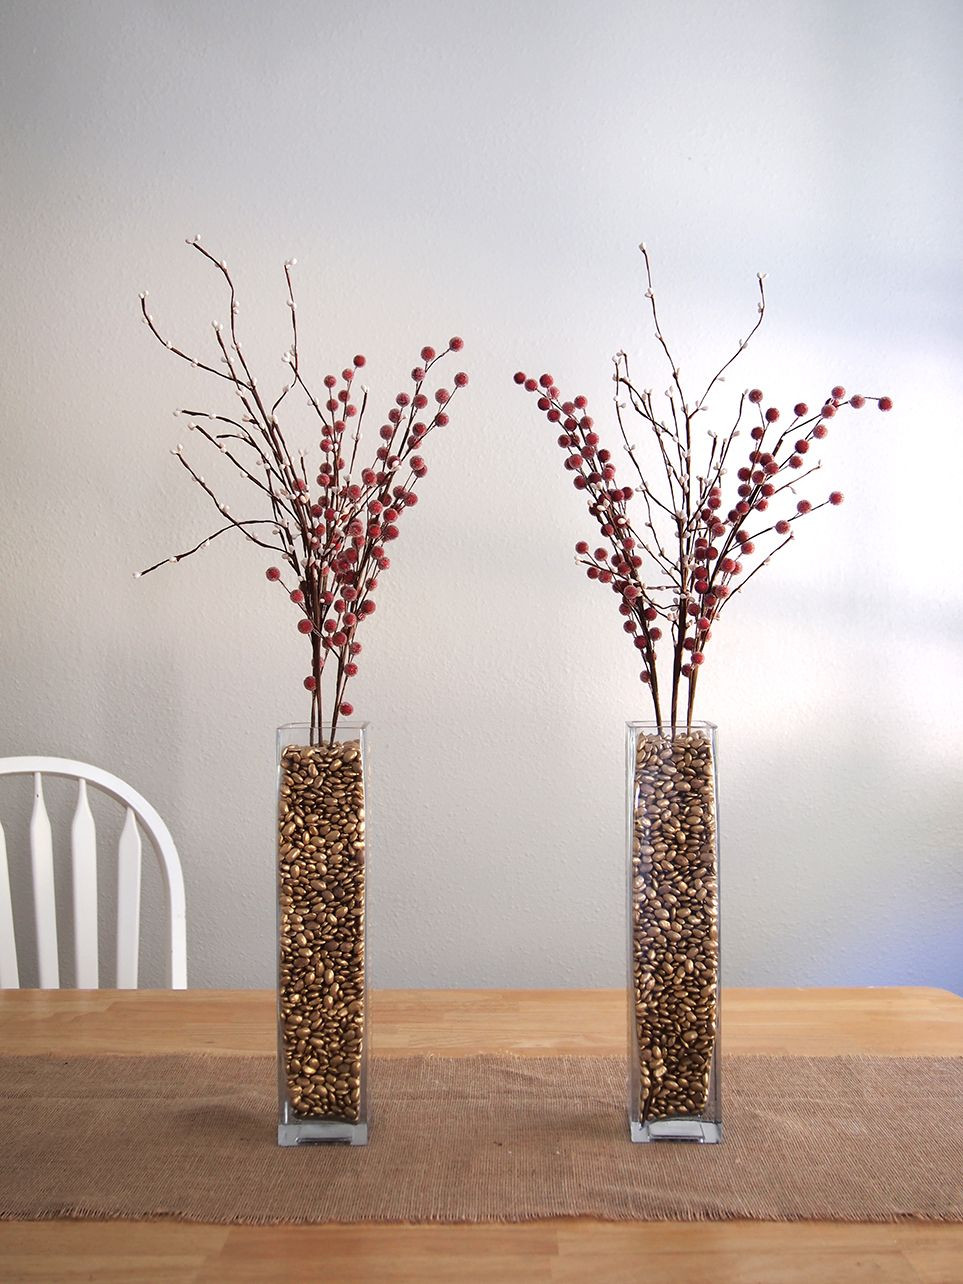 wood vase filler of spray painted pinto beans used for vase filler great idea great pertaining to spray painted pinto beans used for vase filler great idea